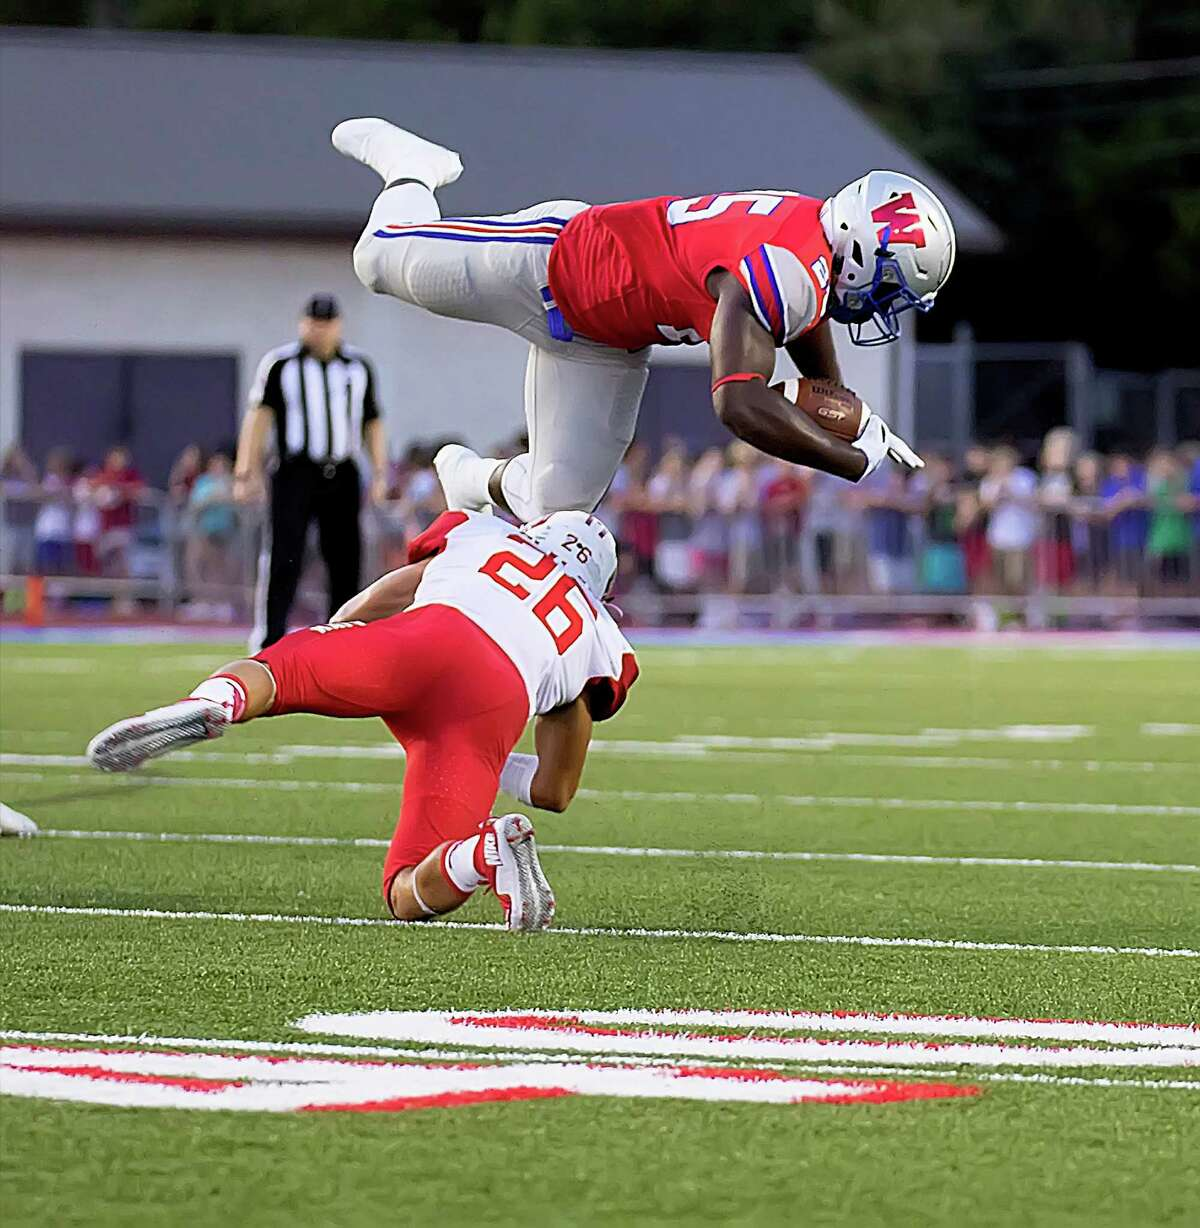 Katy's Felipe alvear 926) shoestring tackles Westlake's Nakia Watson (25) during the first football game of the season with the Katy High School Tigers and the Westlake High School Chaparrals played in Austin, Texas, at the Westlake Stadium Friday August 26, 2016.